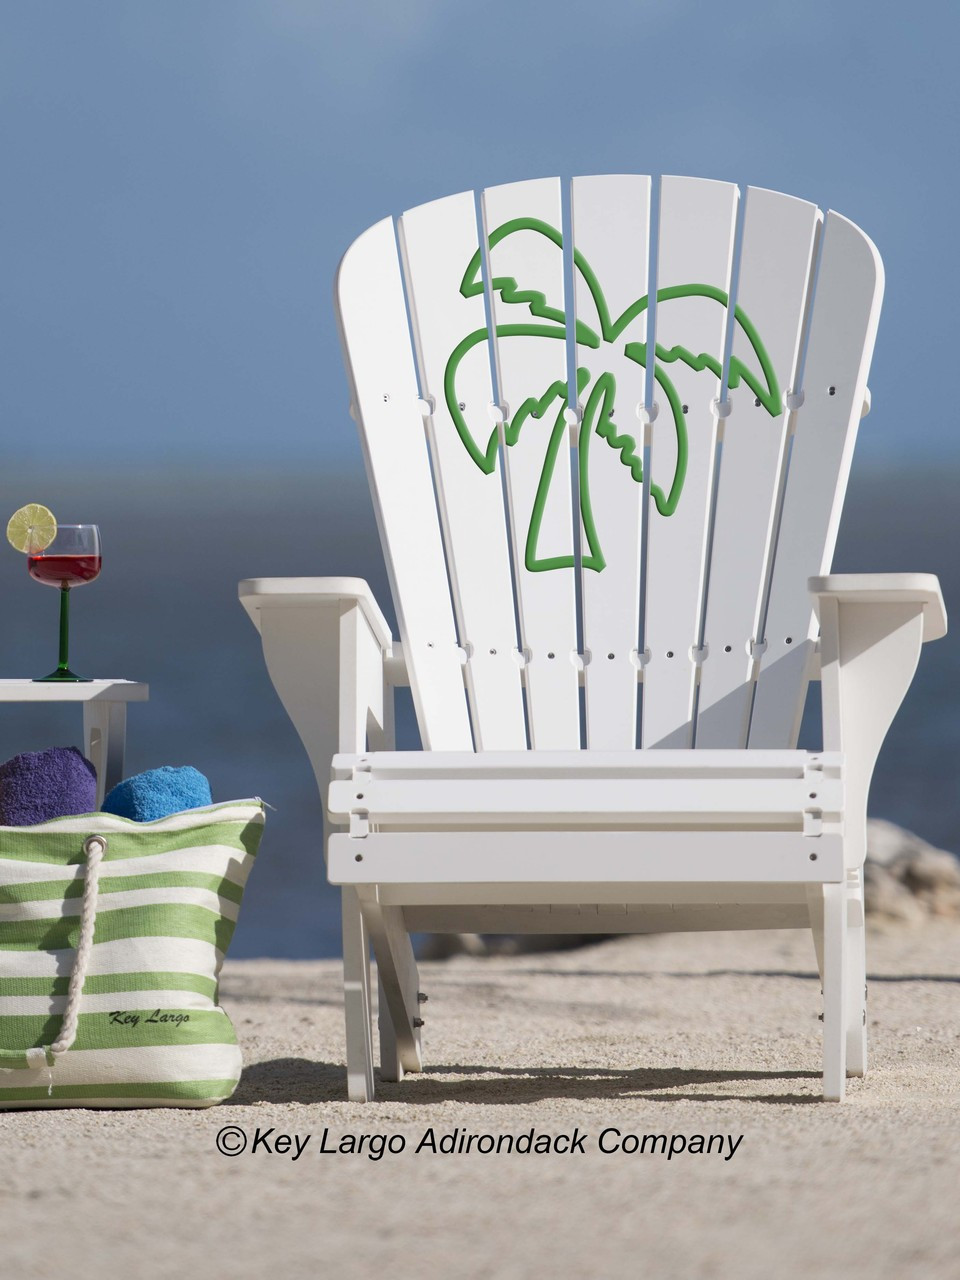 Composite Adirondack Rocking Chairs Home View Our Products Adirondack Chairs Palm Tree Adirondack Chair